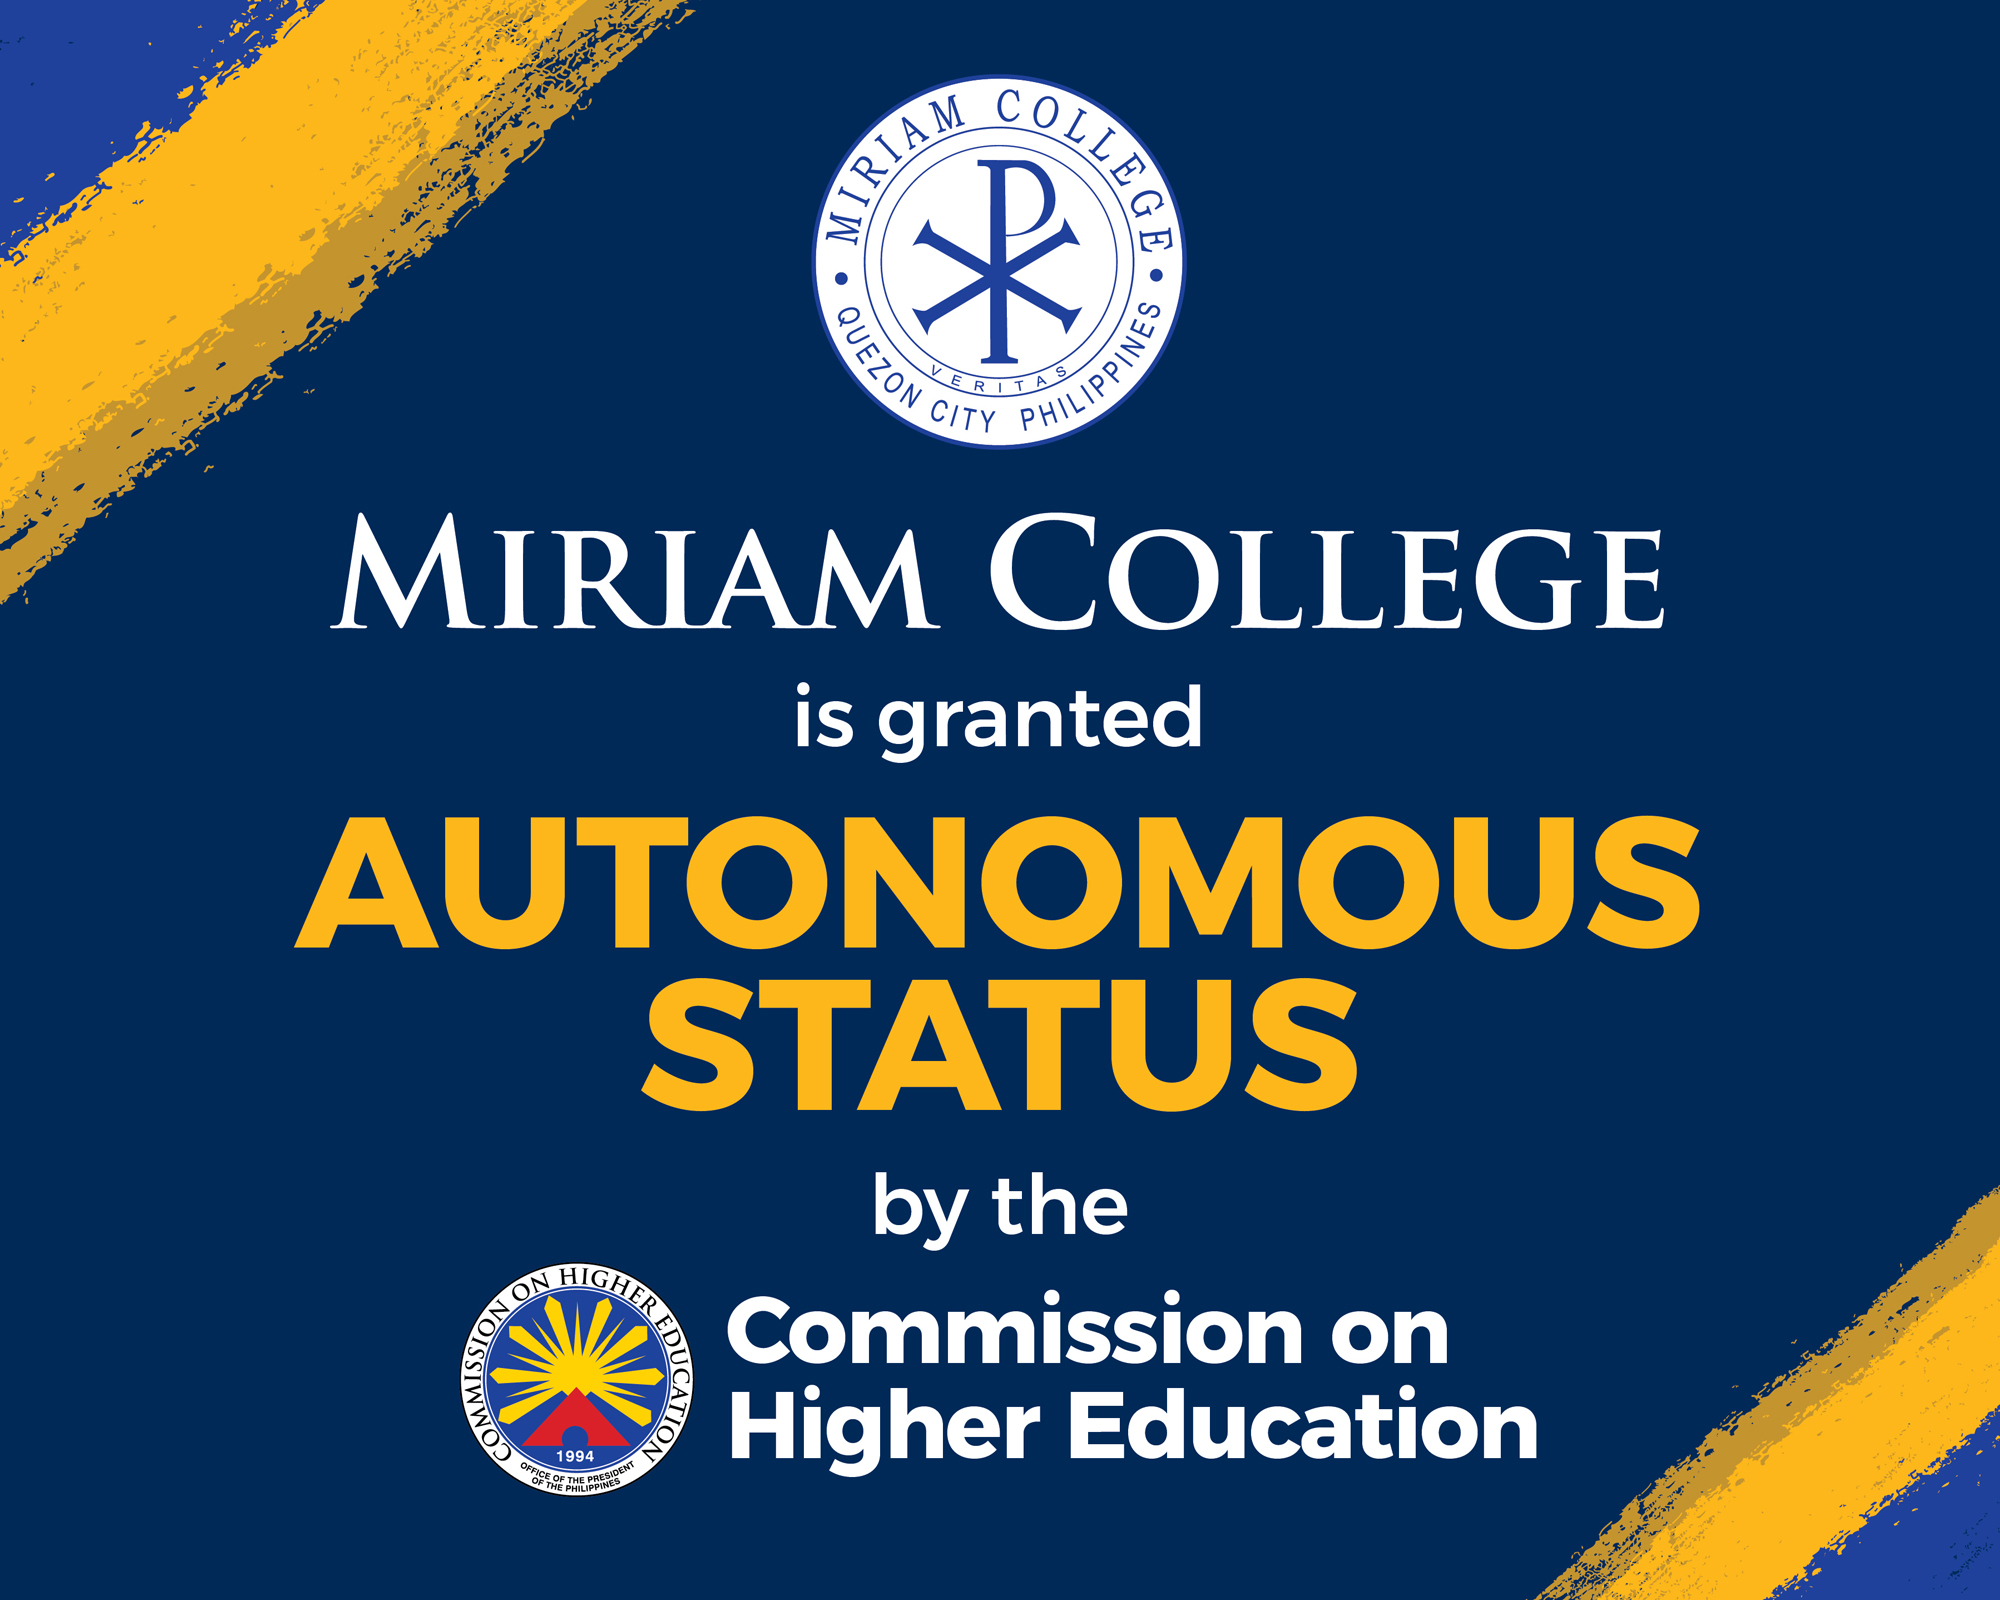 Miriam College granted Autonomous Status by CHED